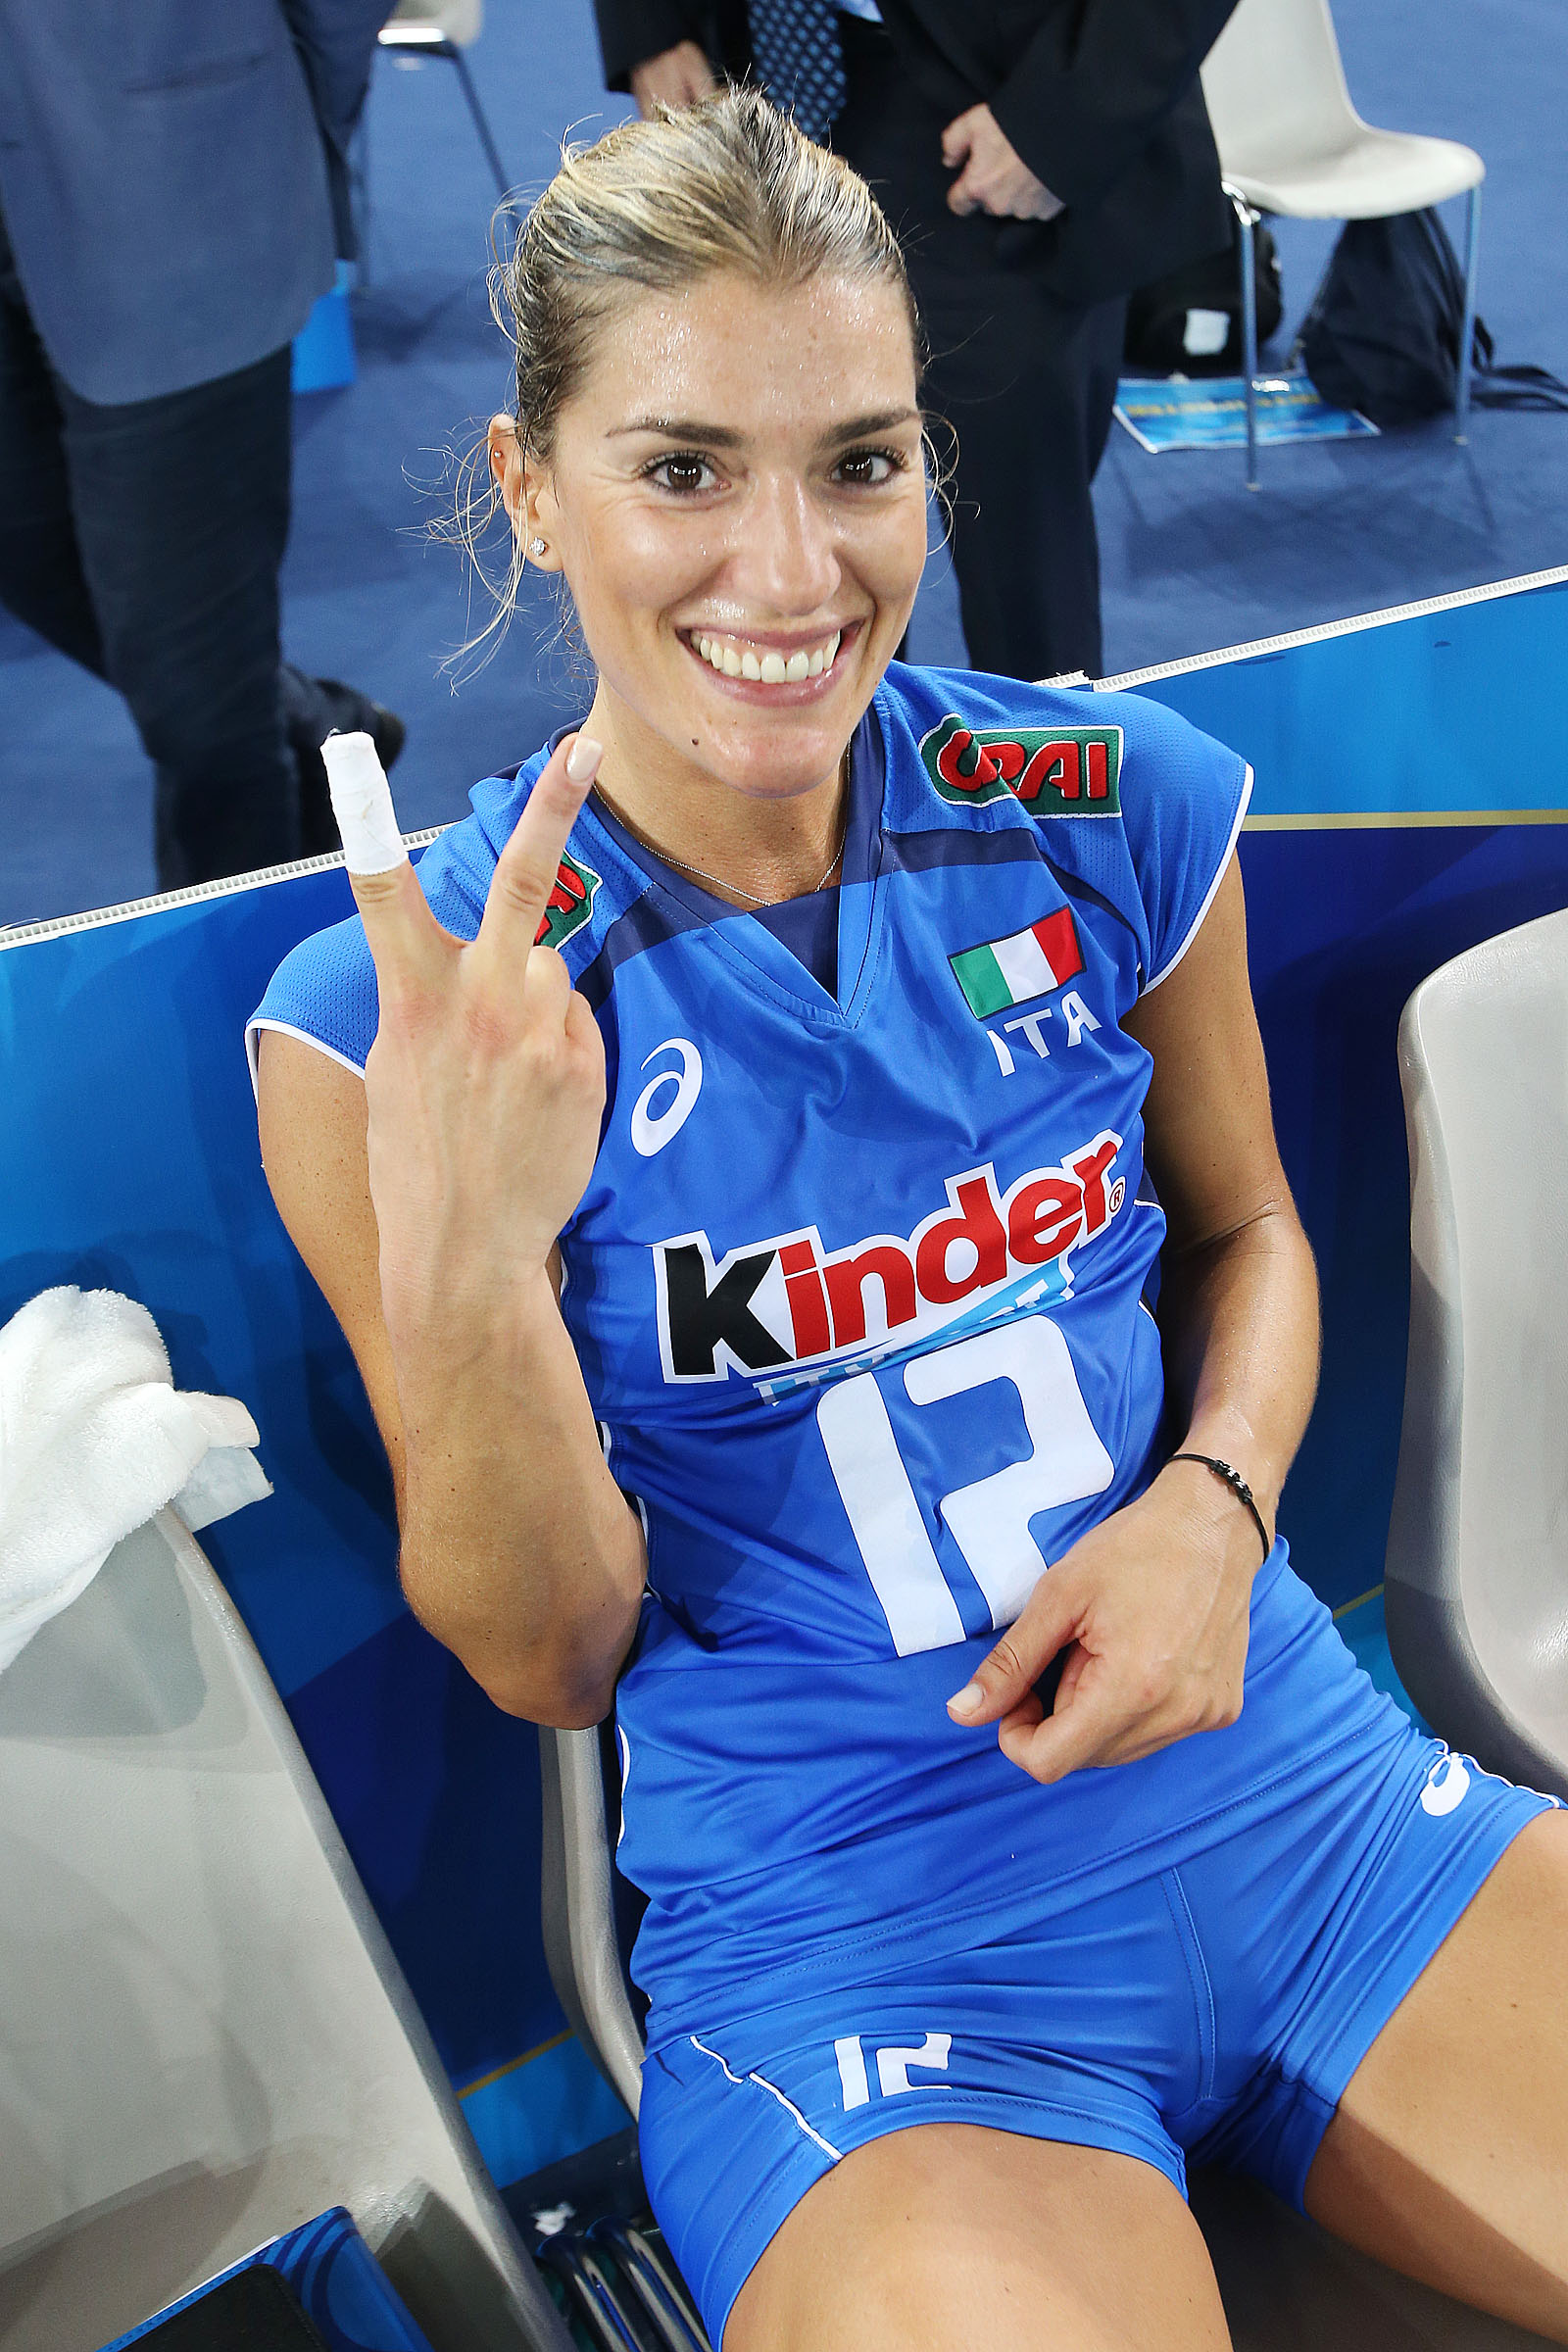 Remarkable, Volleyball player francesca piccinini amusing topic